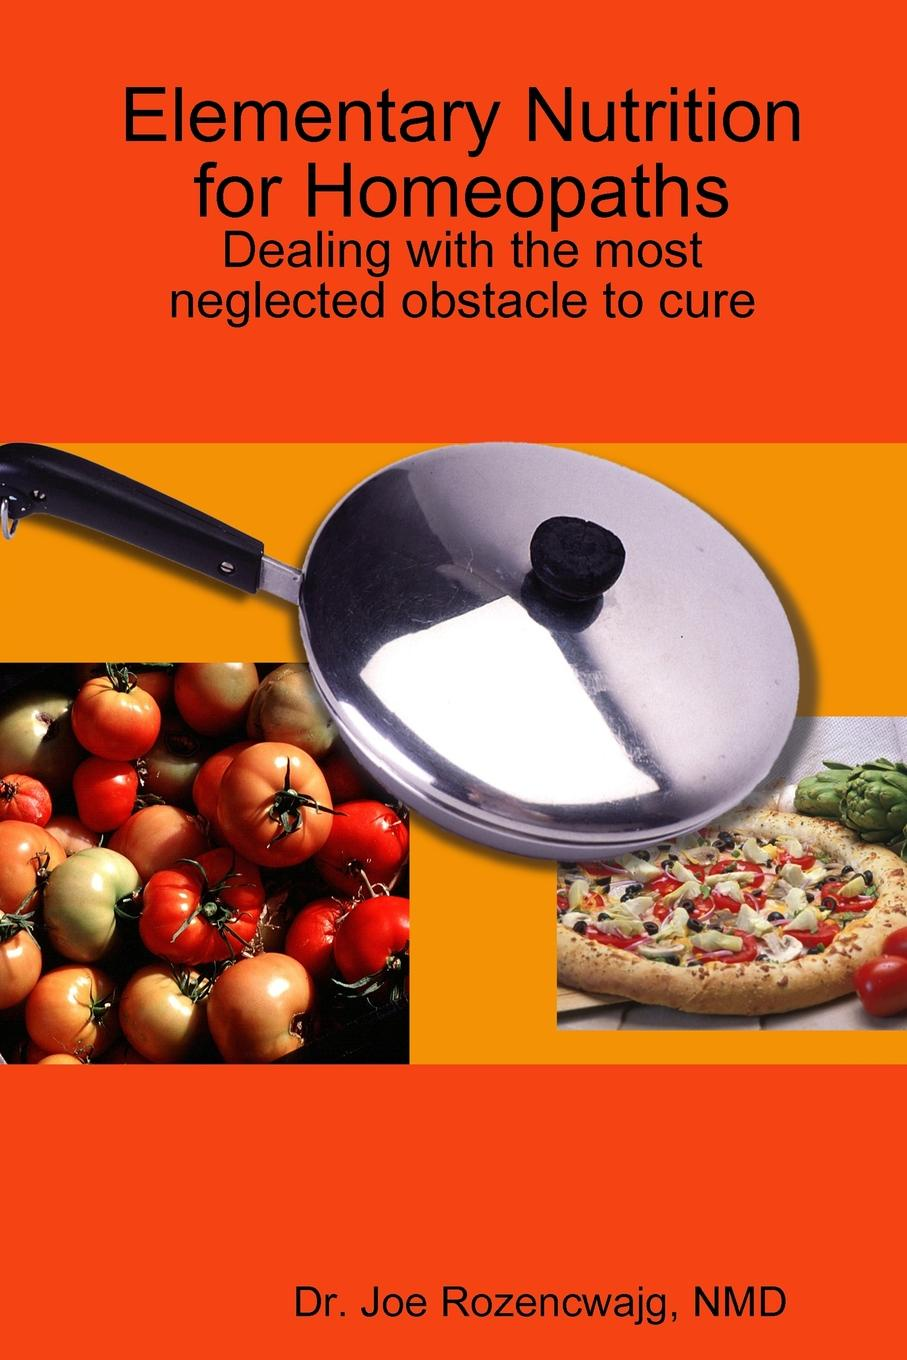 NMD Dr. Joe Rozencwajg Elementary Nutrition for Homeopaths (monochrome) hidden dangers in what we eat and drink